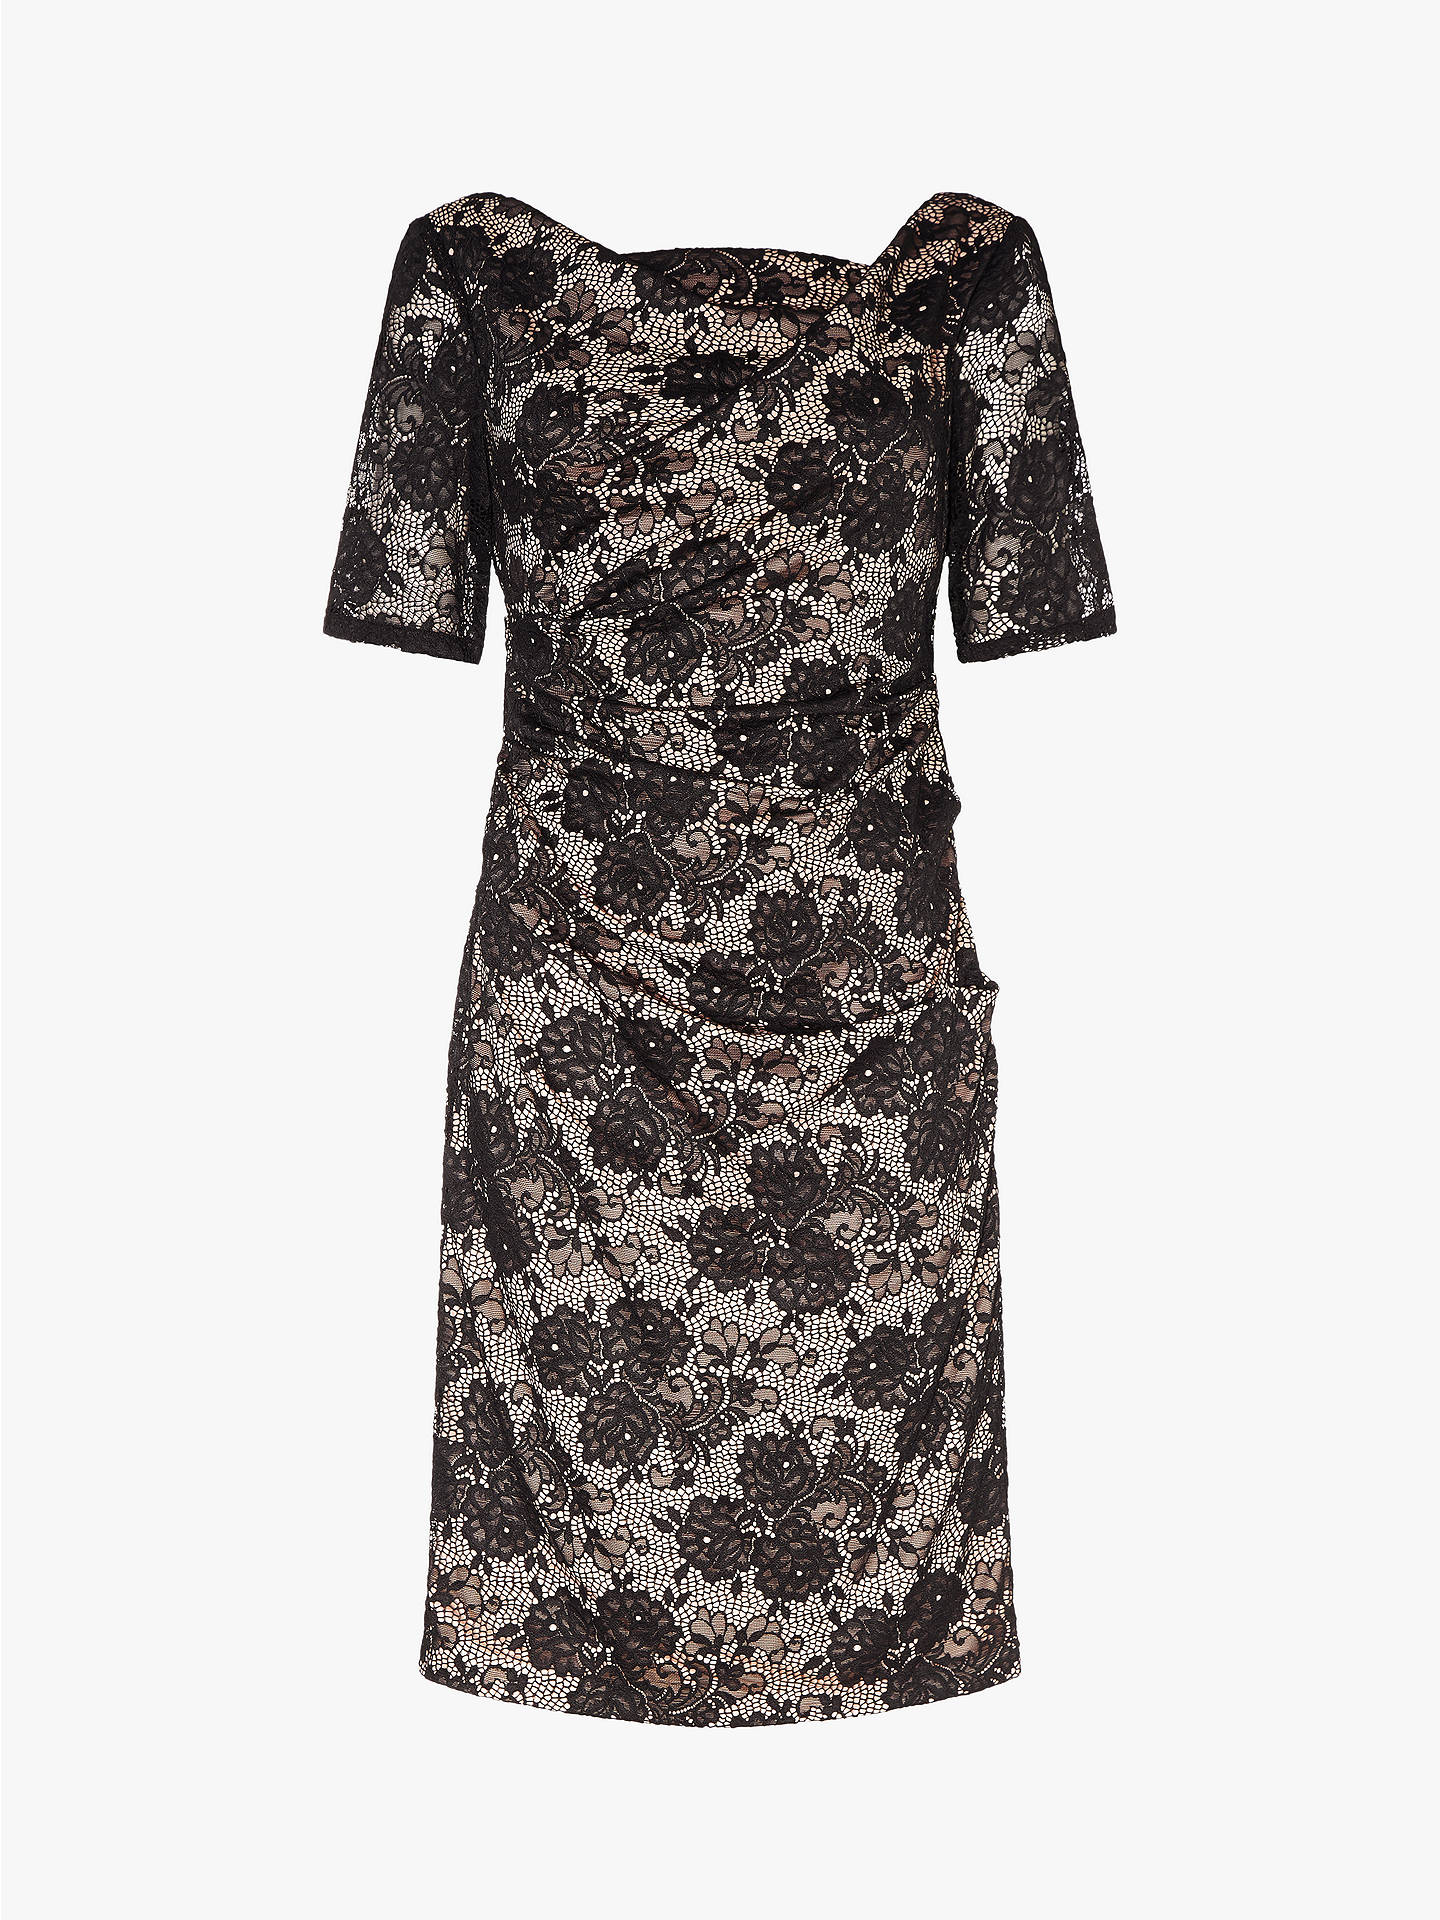 Buy Adrianna Papell Rosa Lace Dress, Black/Pale Pink, 10 Online at johnlewis.com